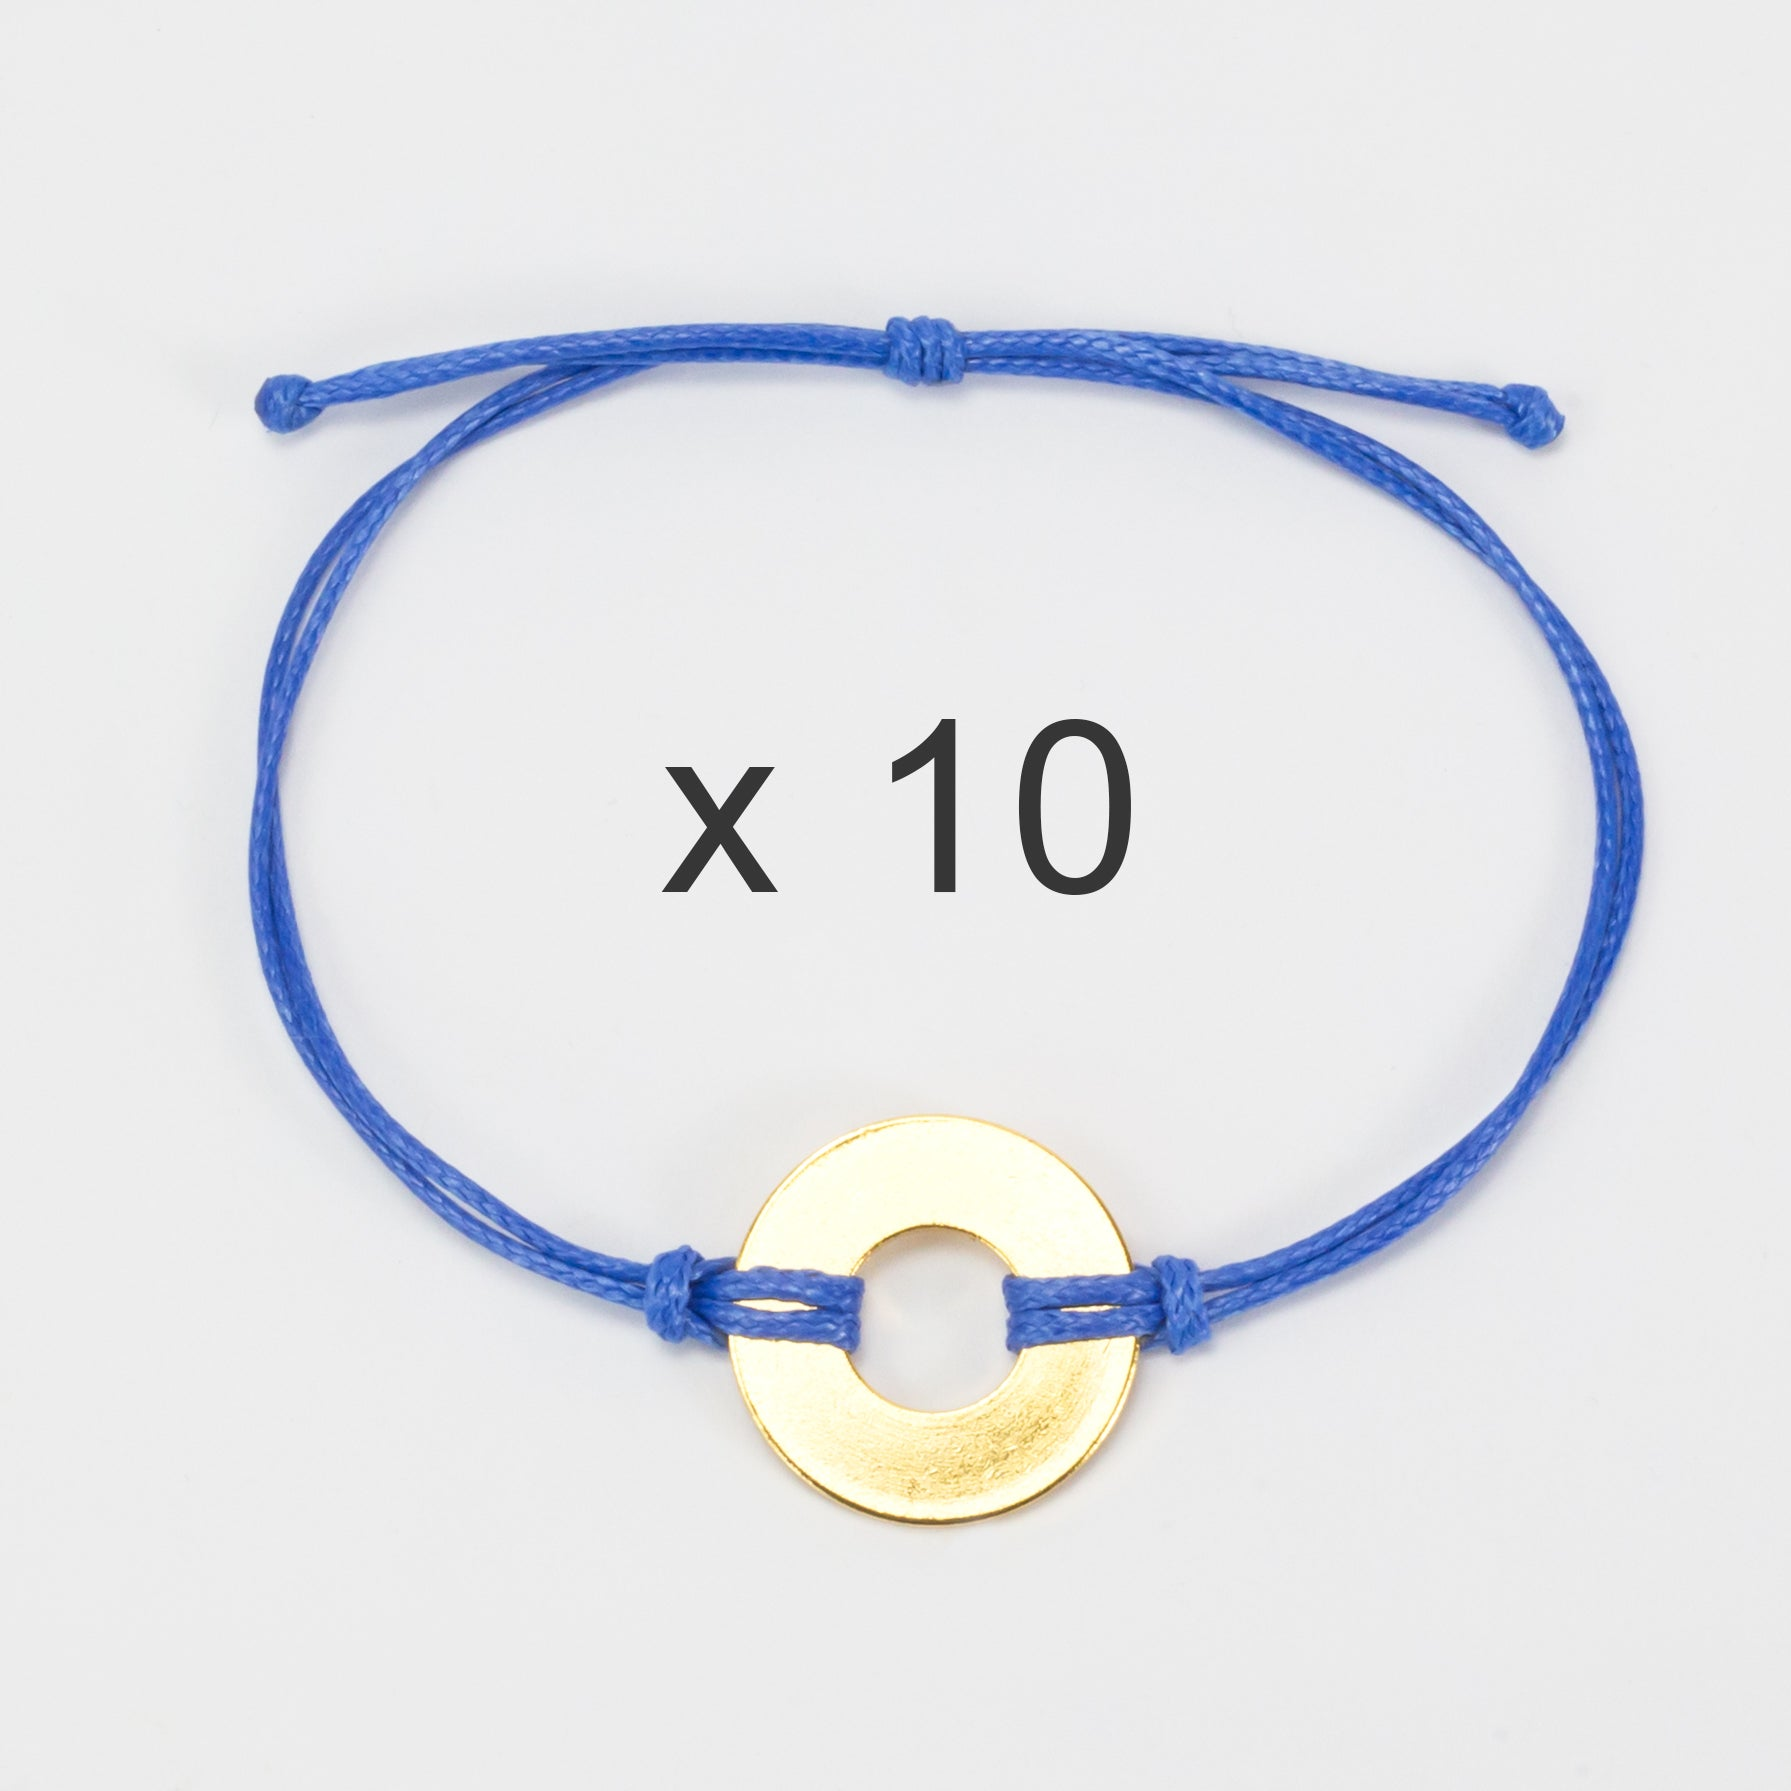 MyIntent Refill Classic Bracelets Blue String set of 10 with Brass tokens